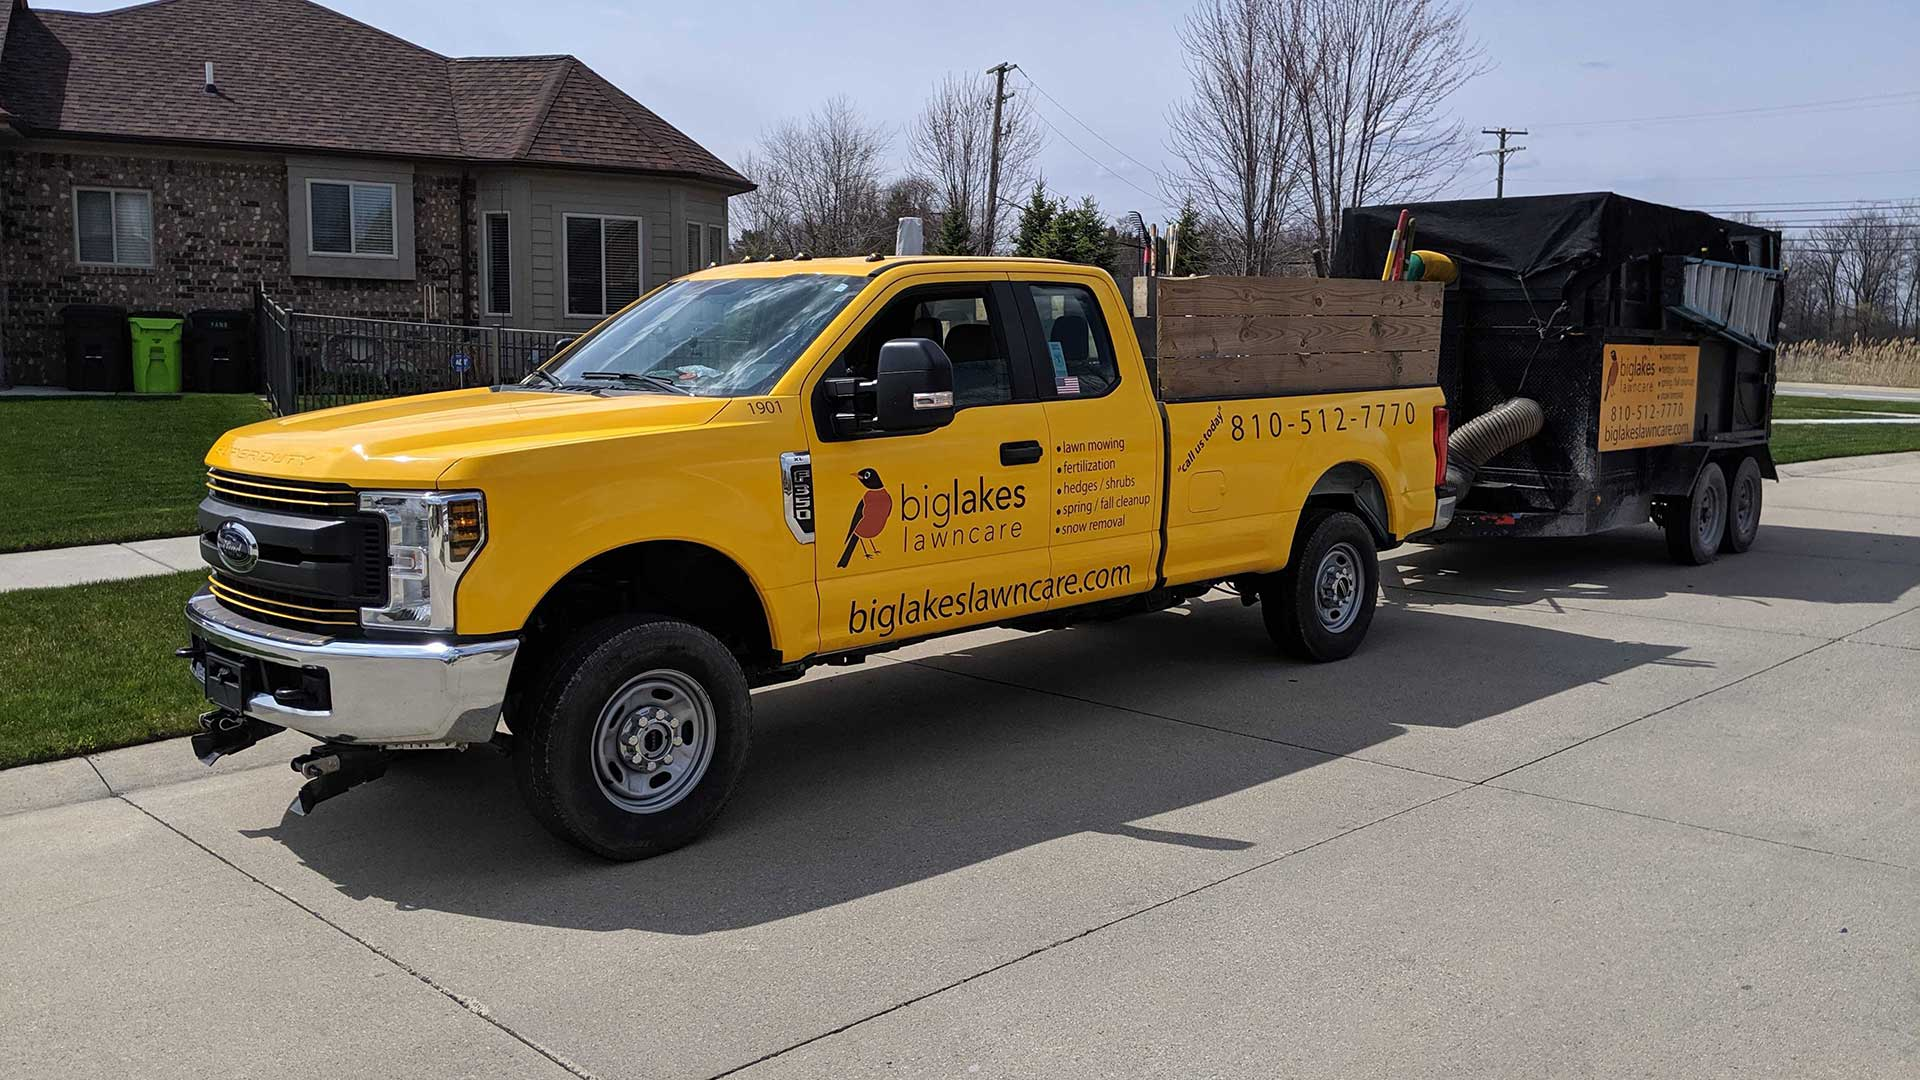 Big Lakes Lawncare lawn care and landscaping service truck in Washington, MI.